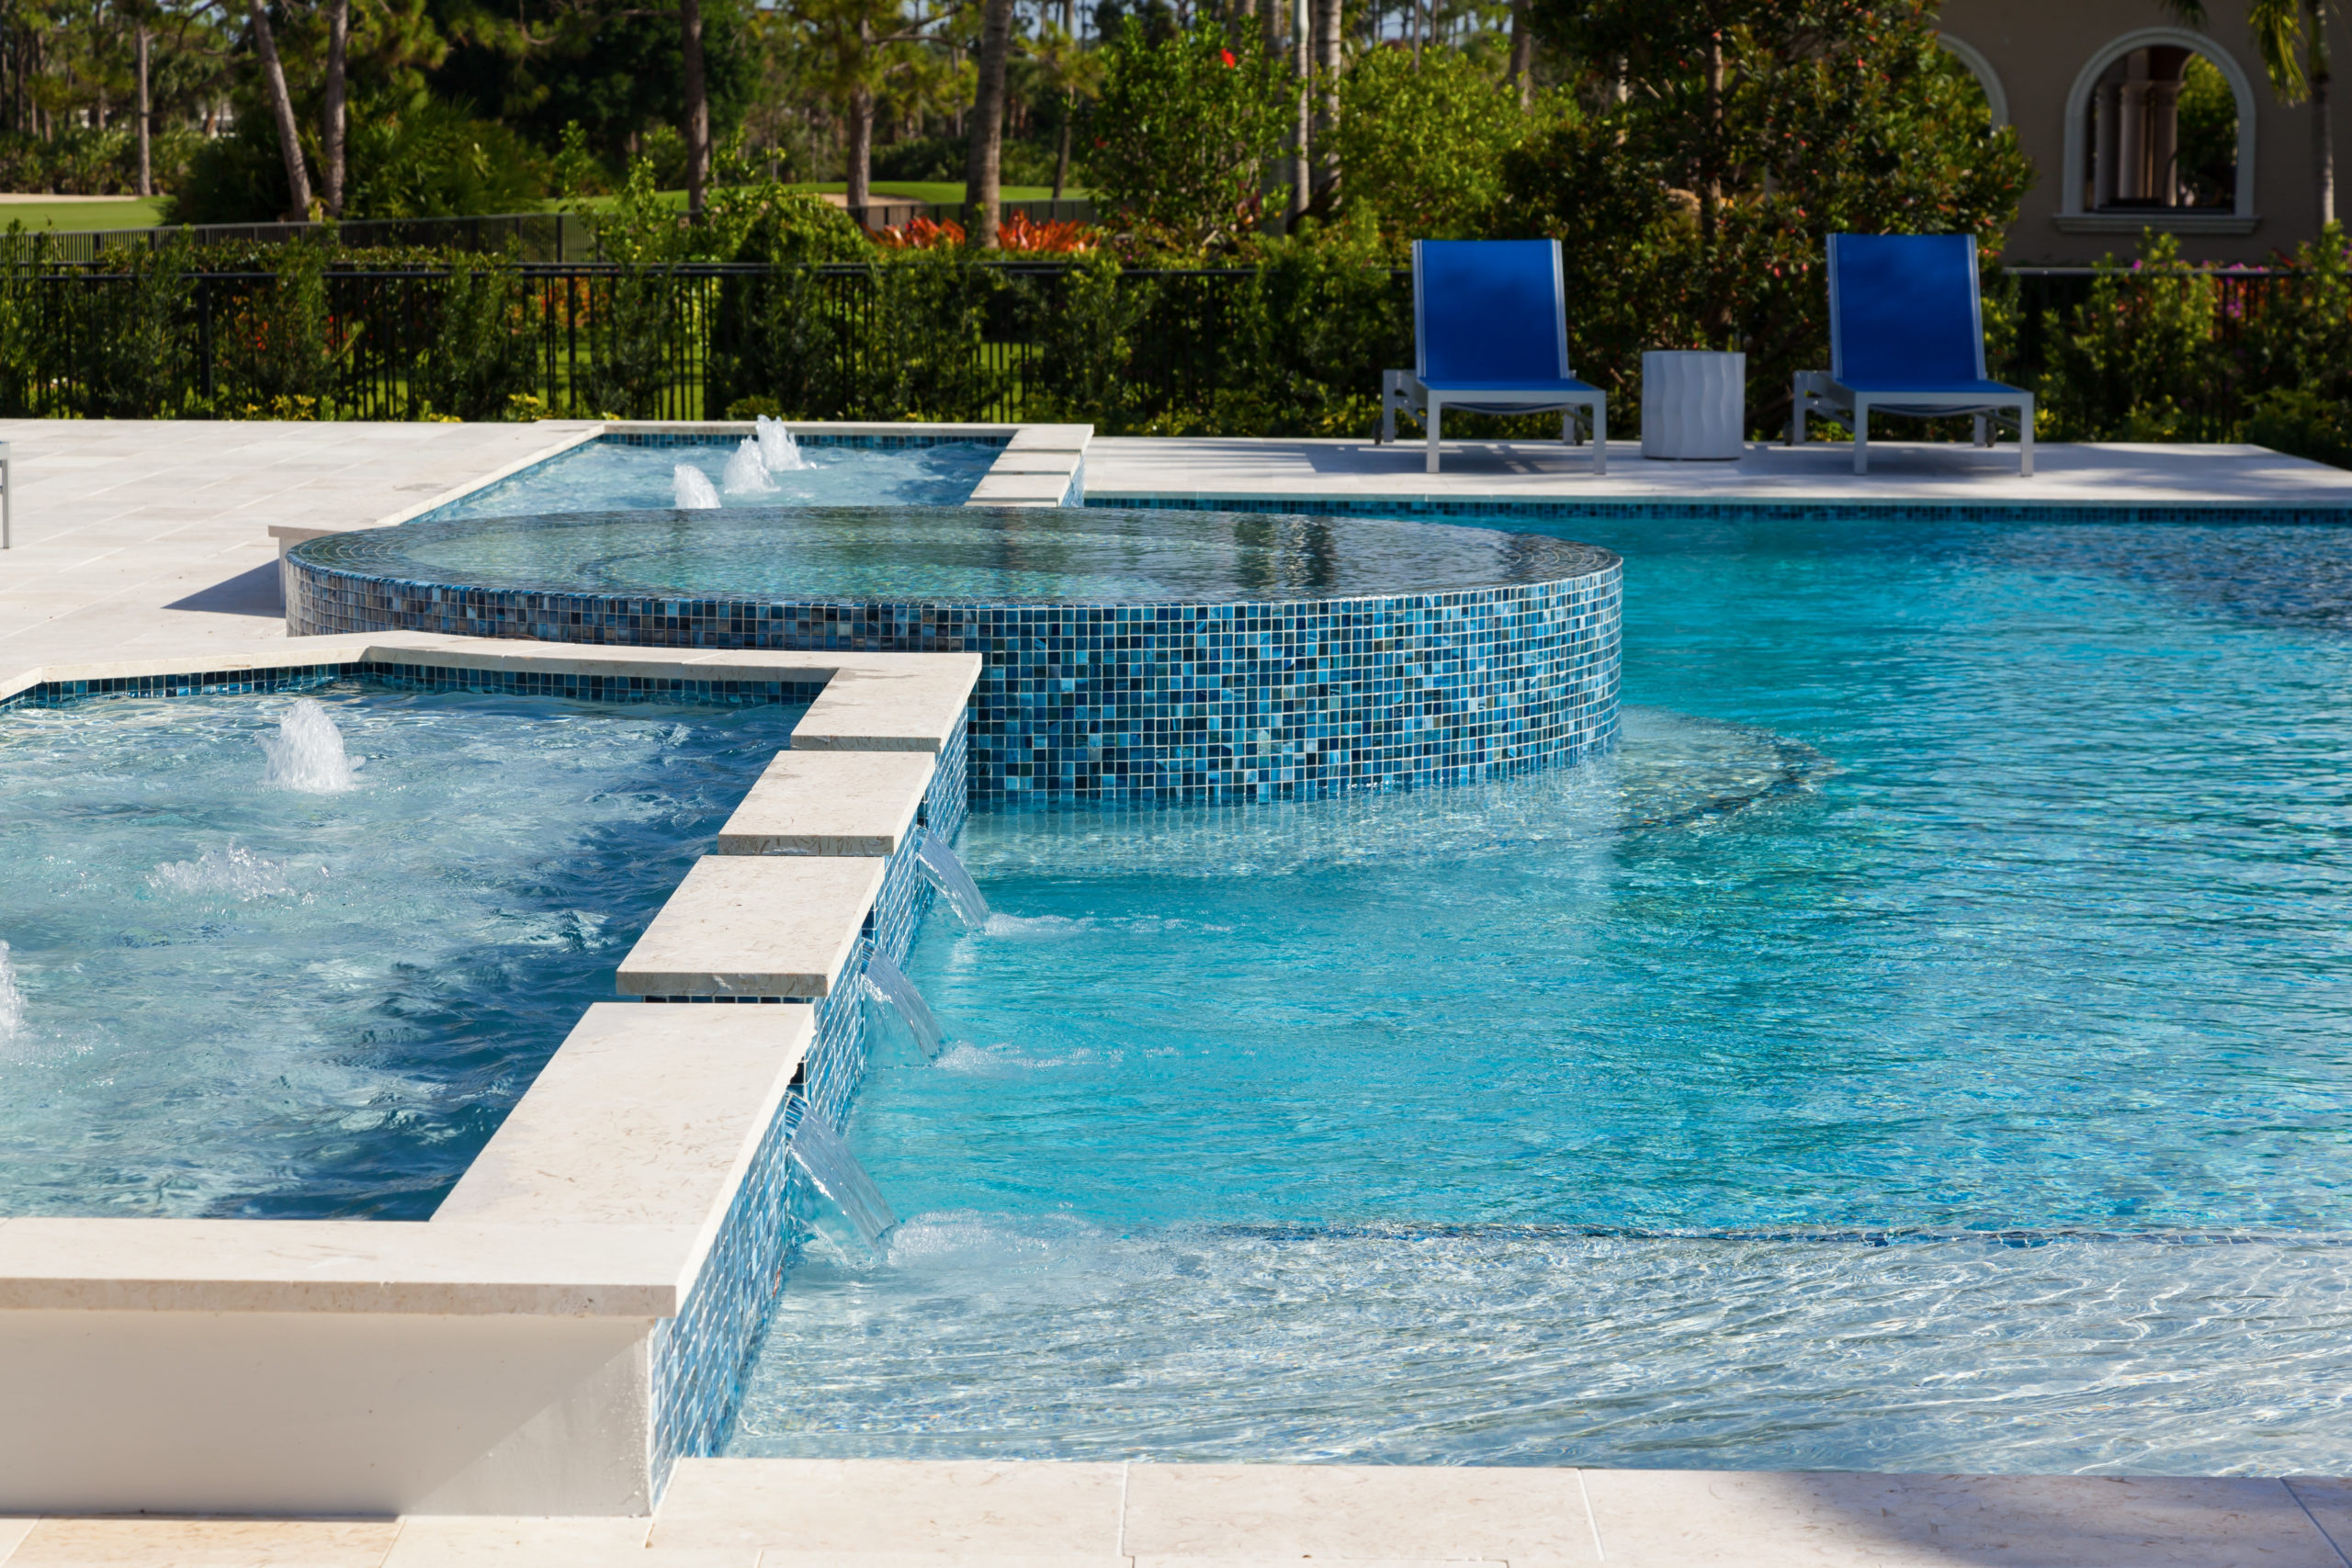 rhr pools of jupiter fl raised infinity spa with water features